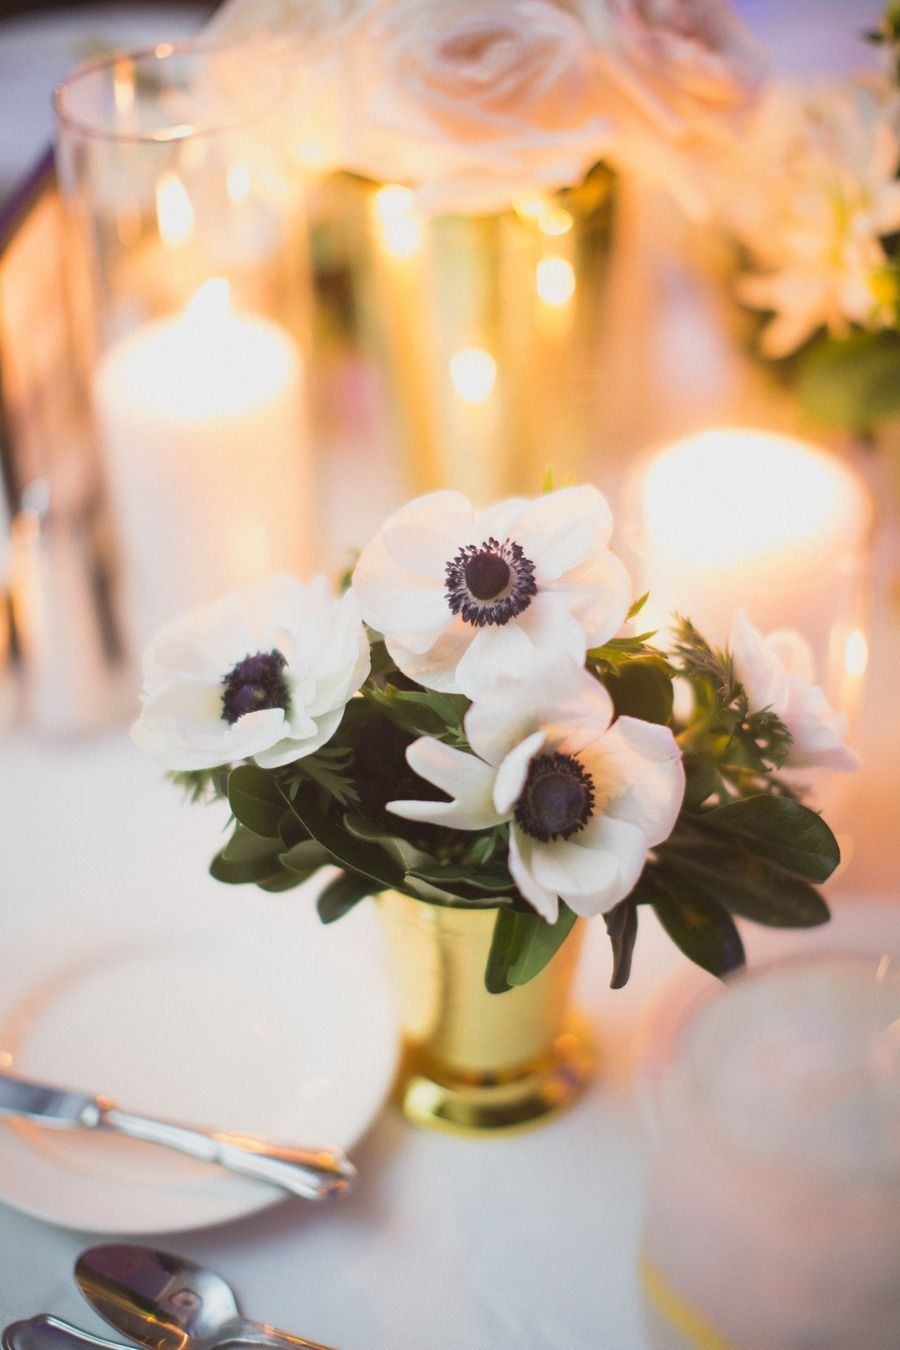 #gold, #centerpiece, #candle  Photography: Taylor Lord Photography - taylorlord.com Planning: Timeless Beginnings - timeless-beginnings.com Floral Design: DeVinnie's Paradise - devinnies.com  Read More: http://www.stylemepretty.com/2013/05/16/san-antonio-wedding-from-taylor-lord-photography/